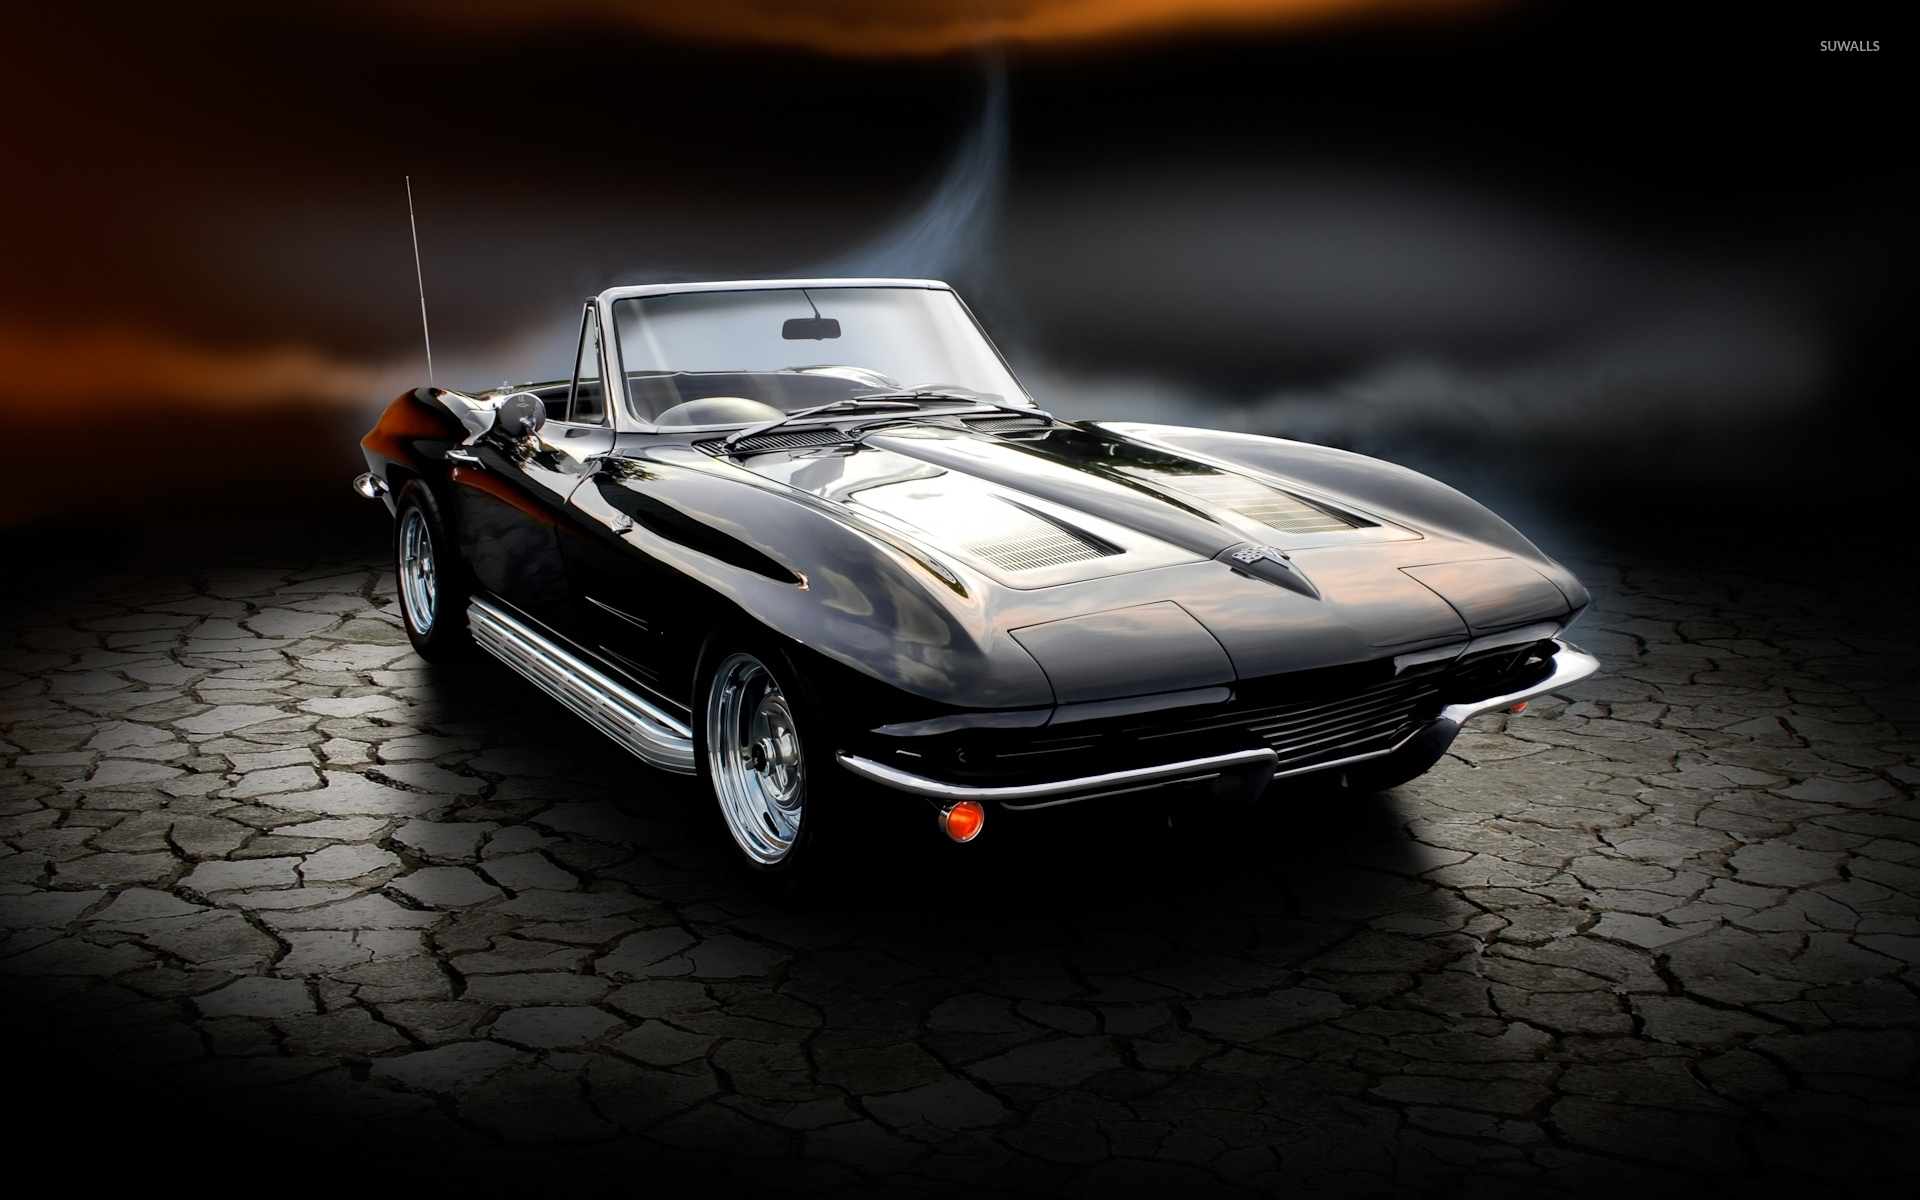 Chevrolet Corvette 3 wallpaper Car wallpapers 37671